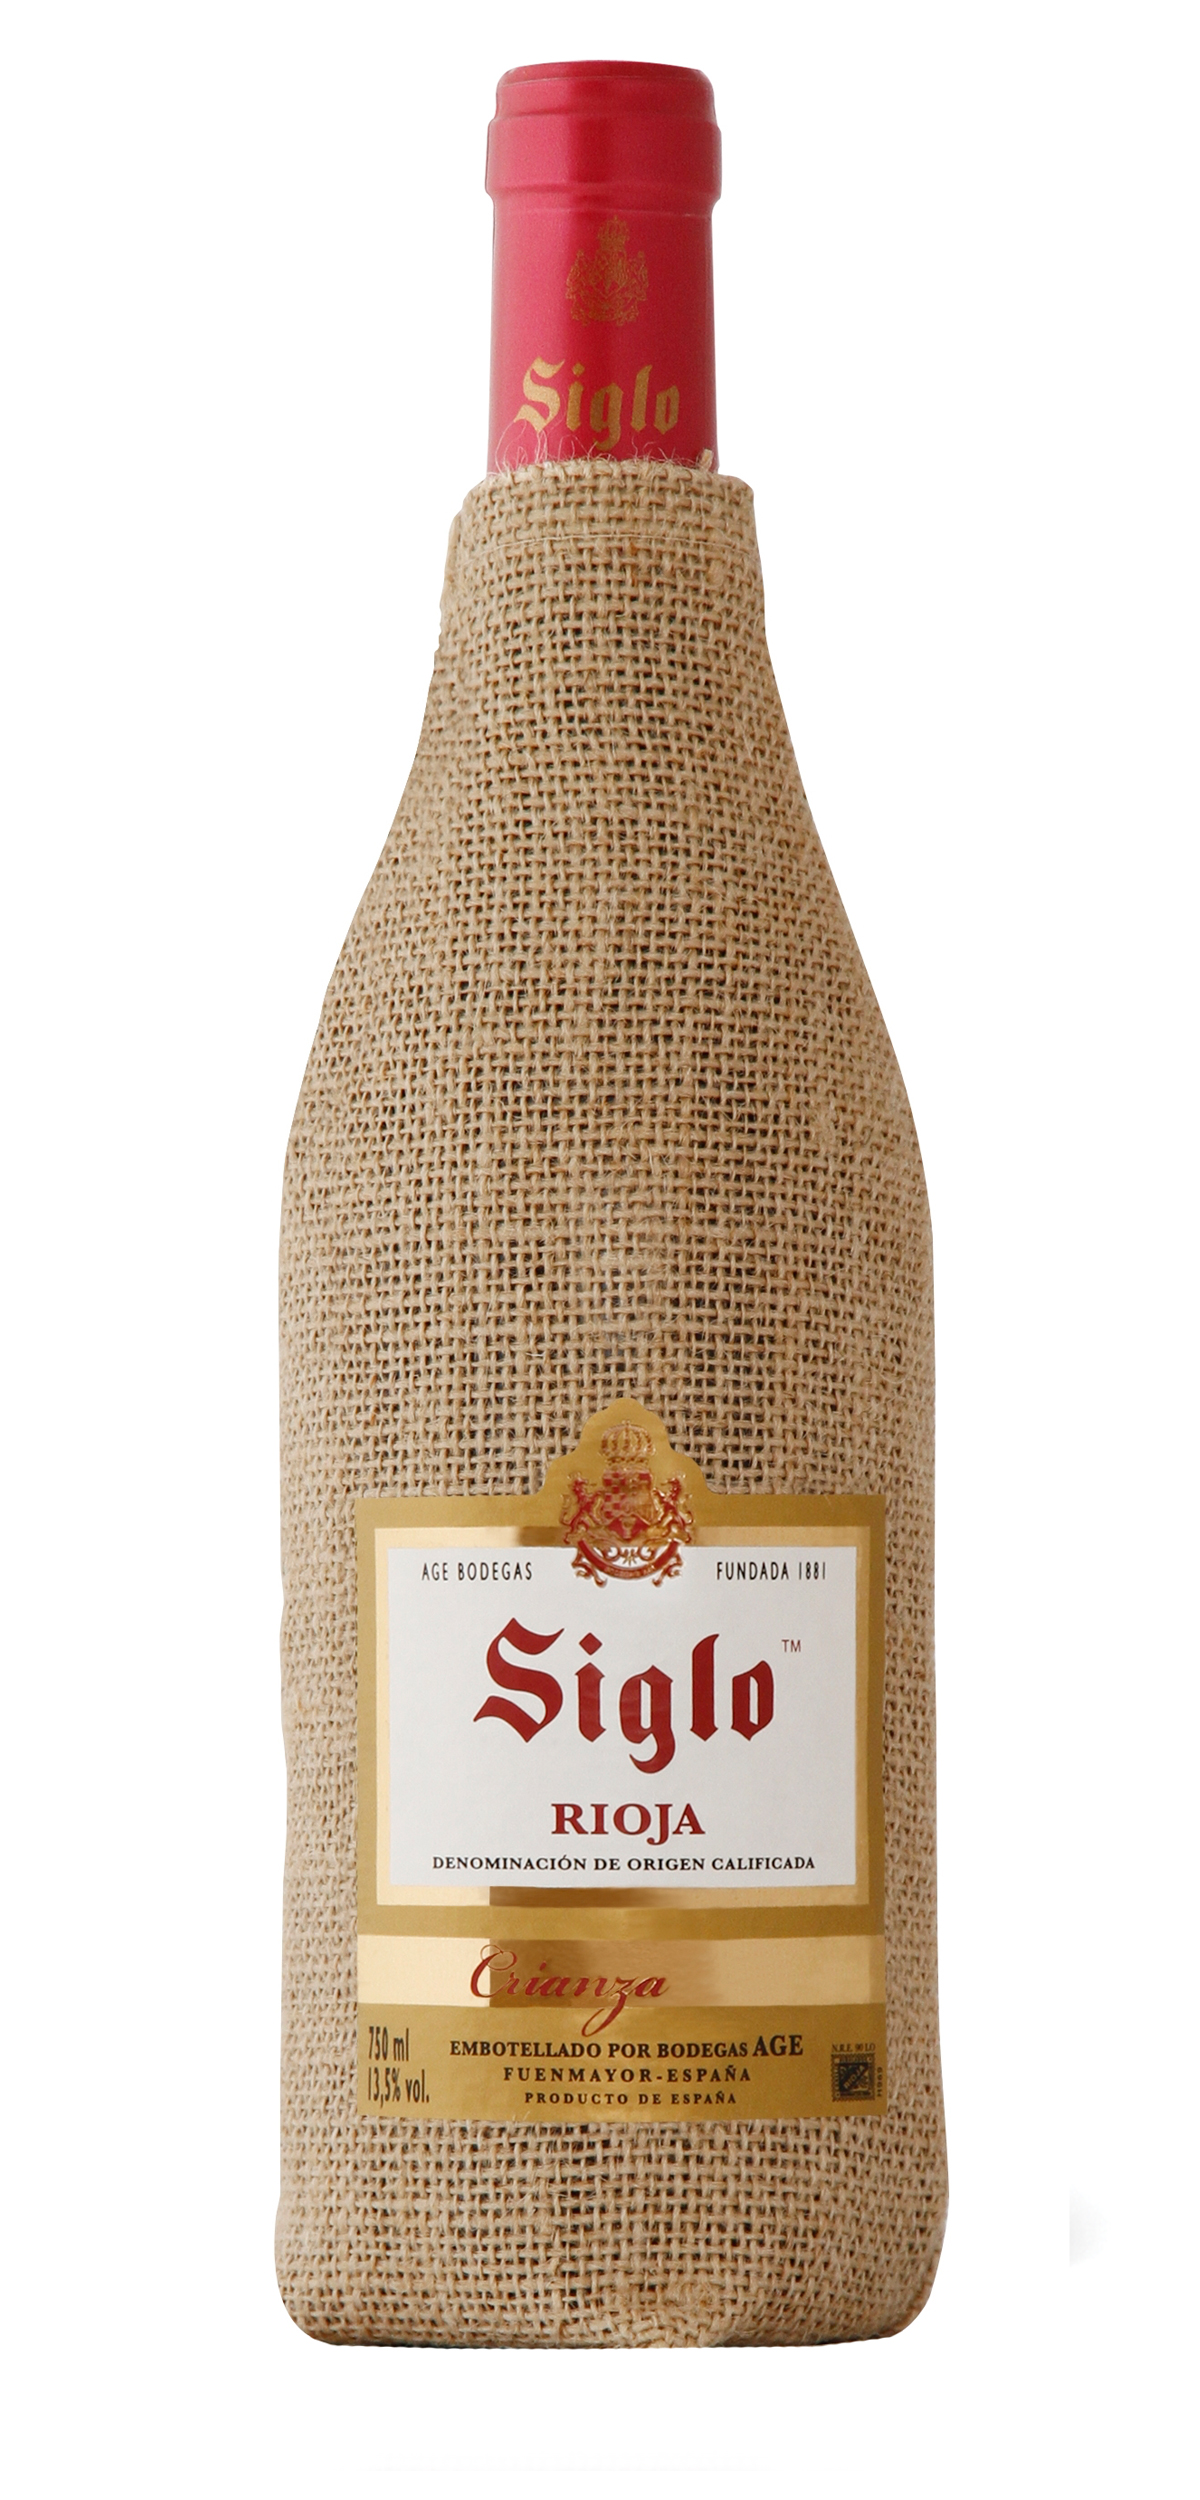 Siglo wine bottle design